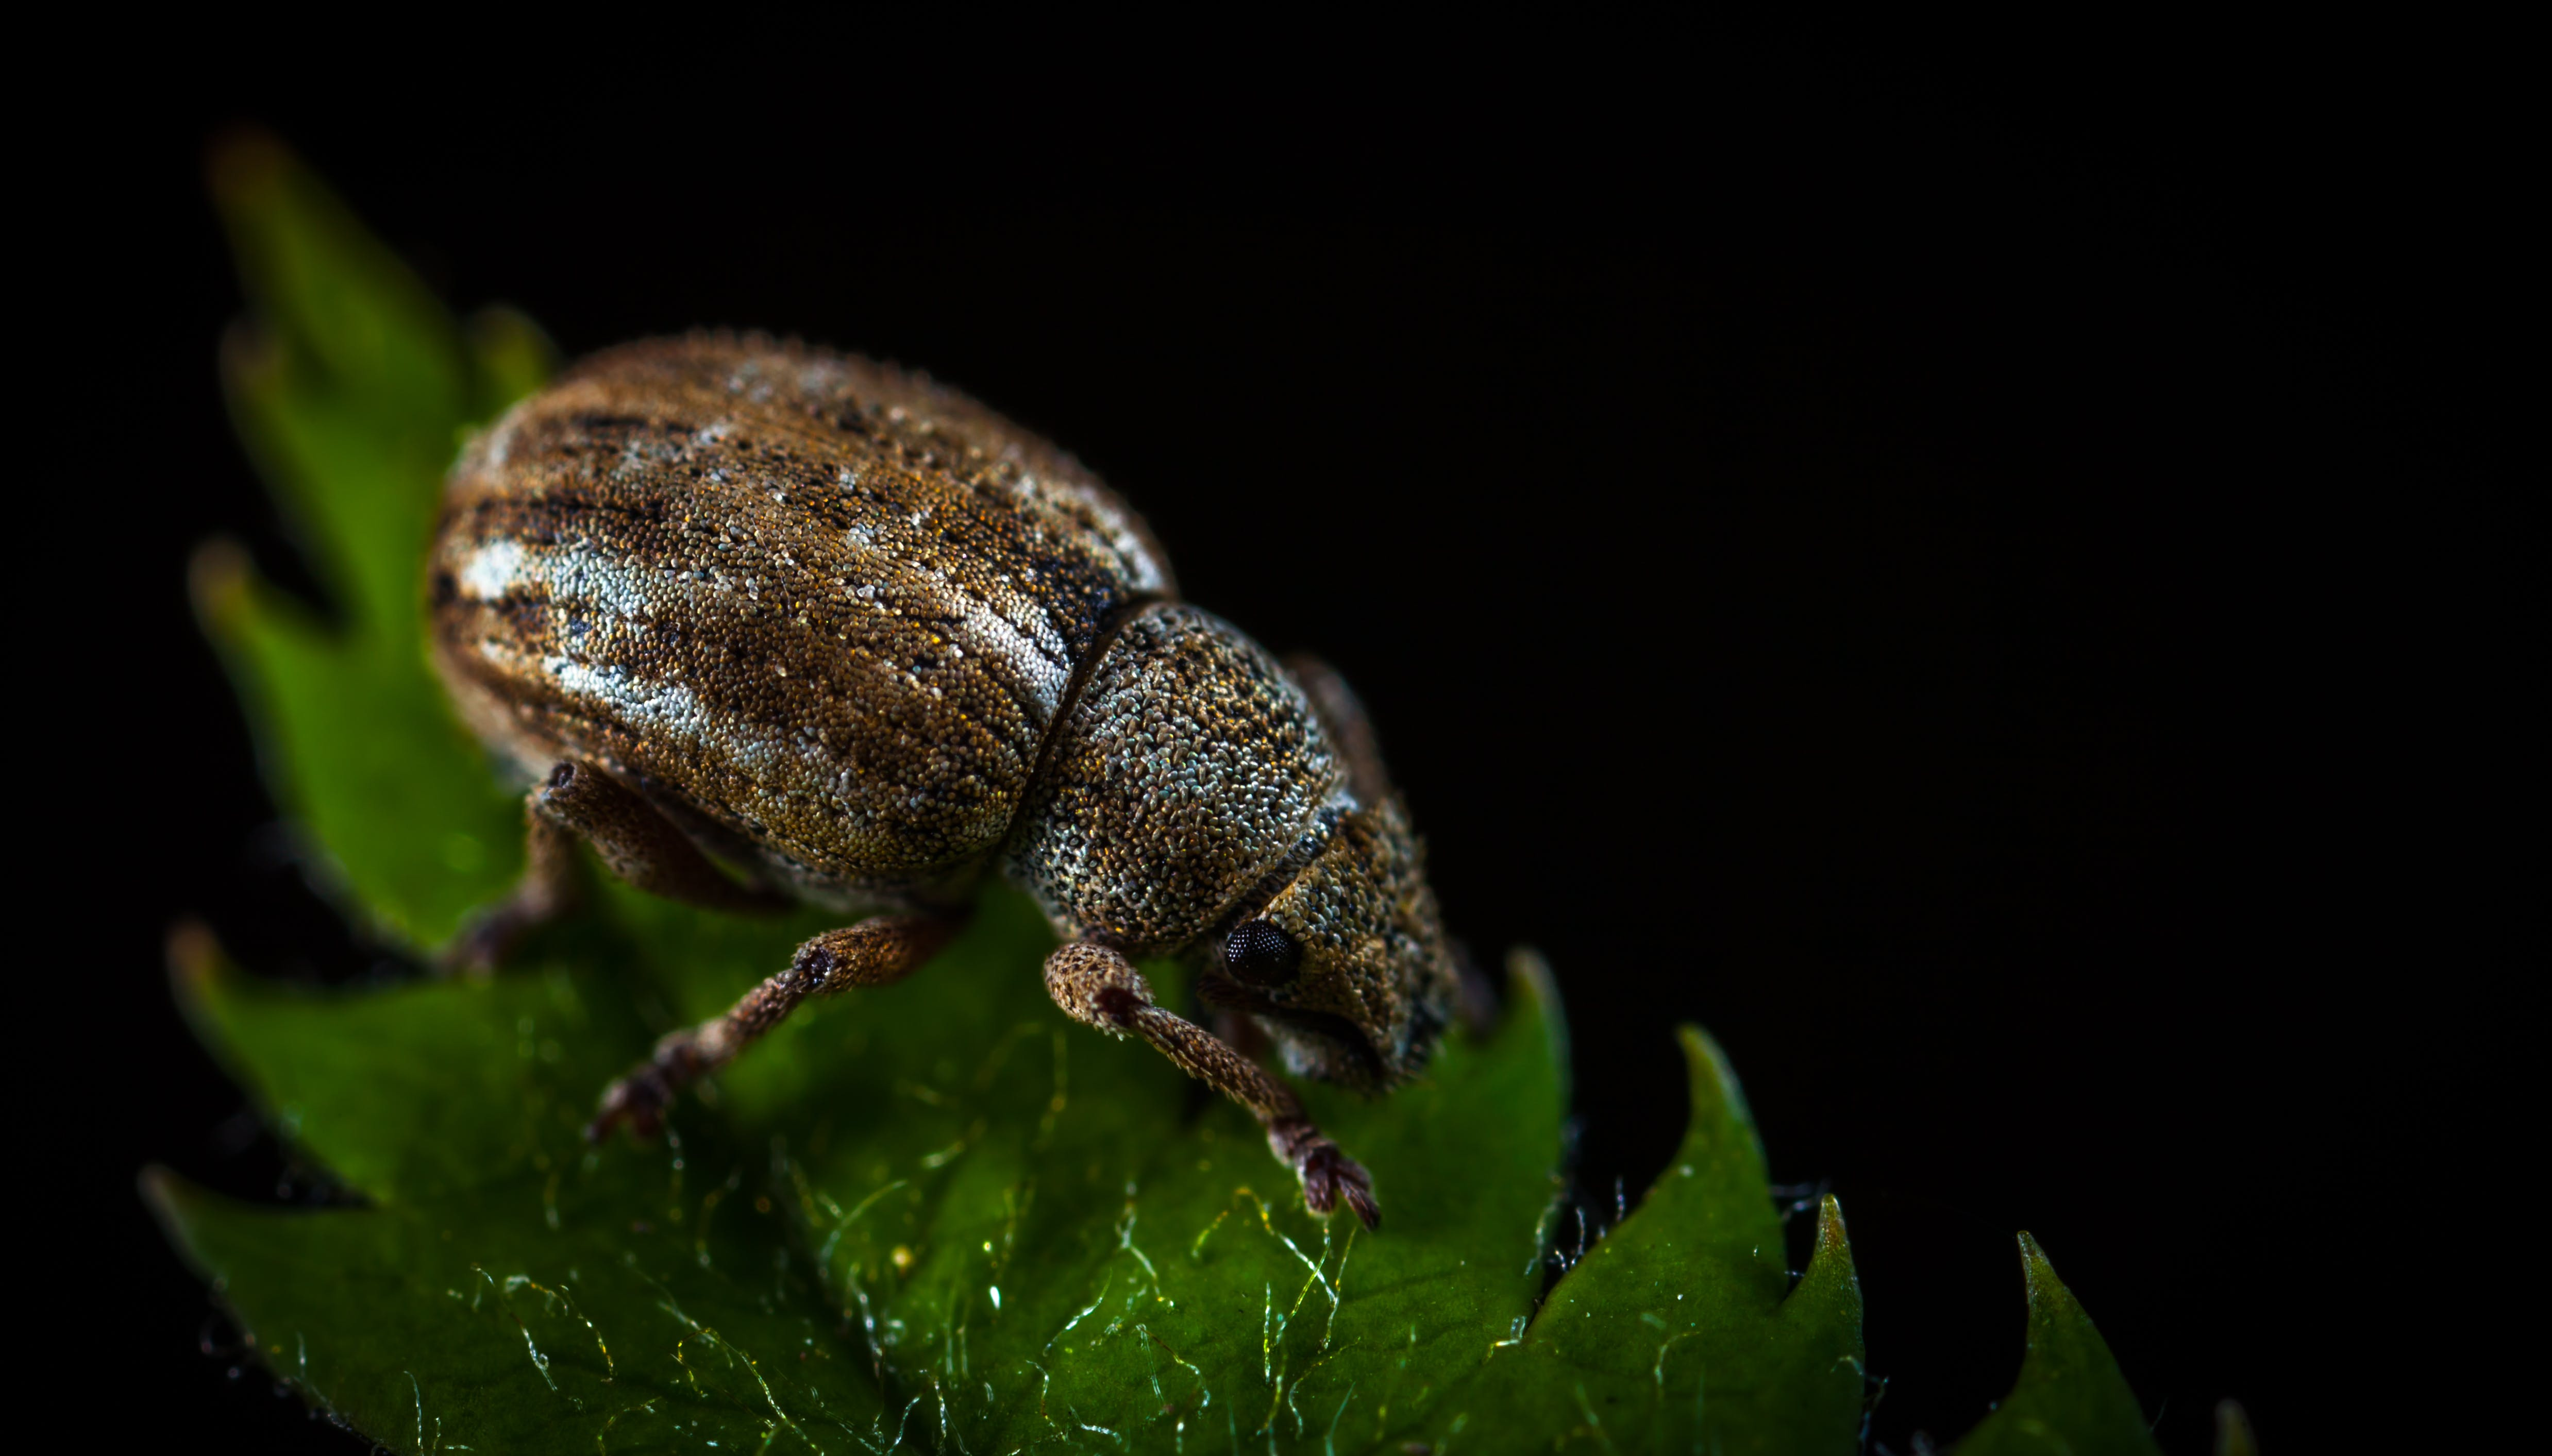 Macro Photography of Brown Weevil on Green Leaf